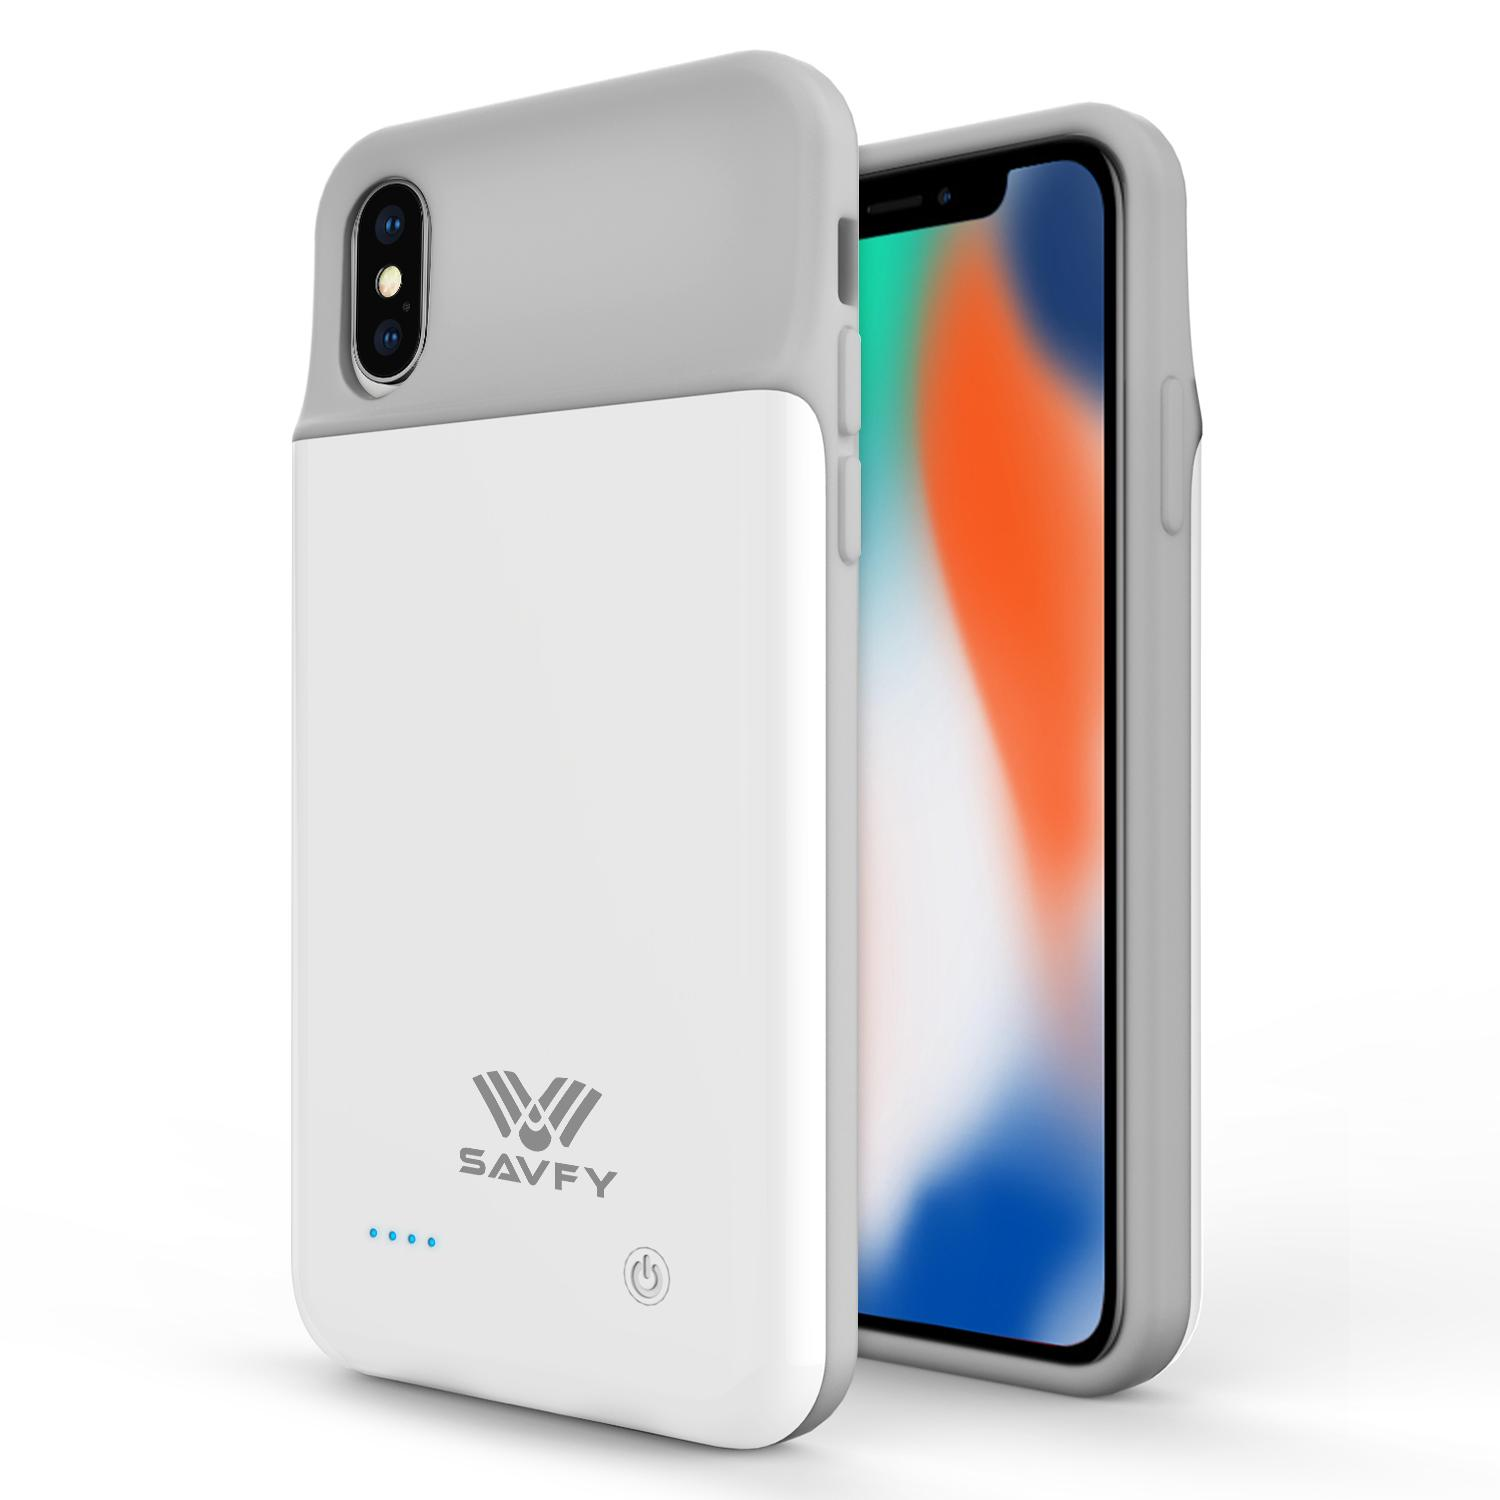 Savfy Apple Iphone X Battery Case 3200mah External Backup Powerbank Charger Case With Free Soft Protective Iphone X Case By Wripples.